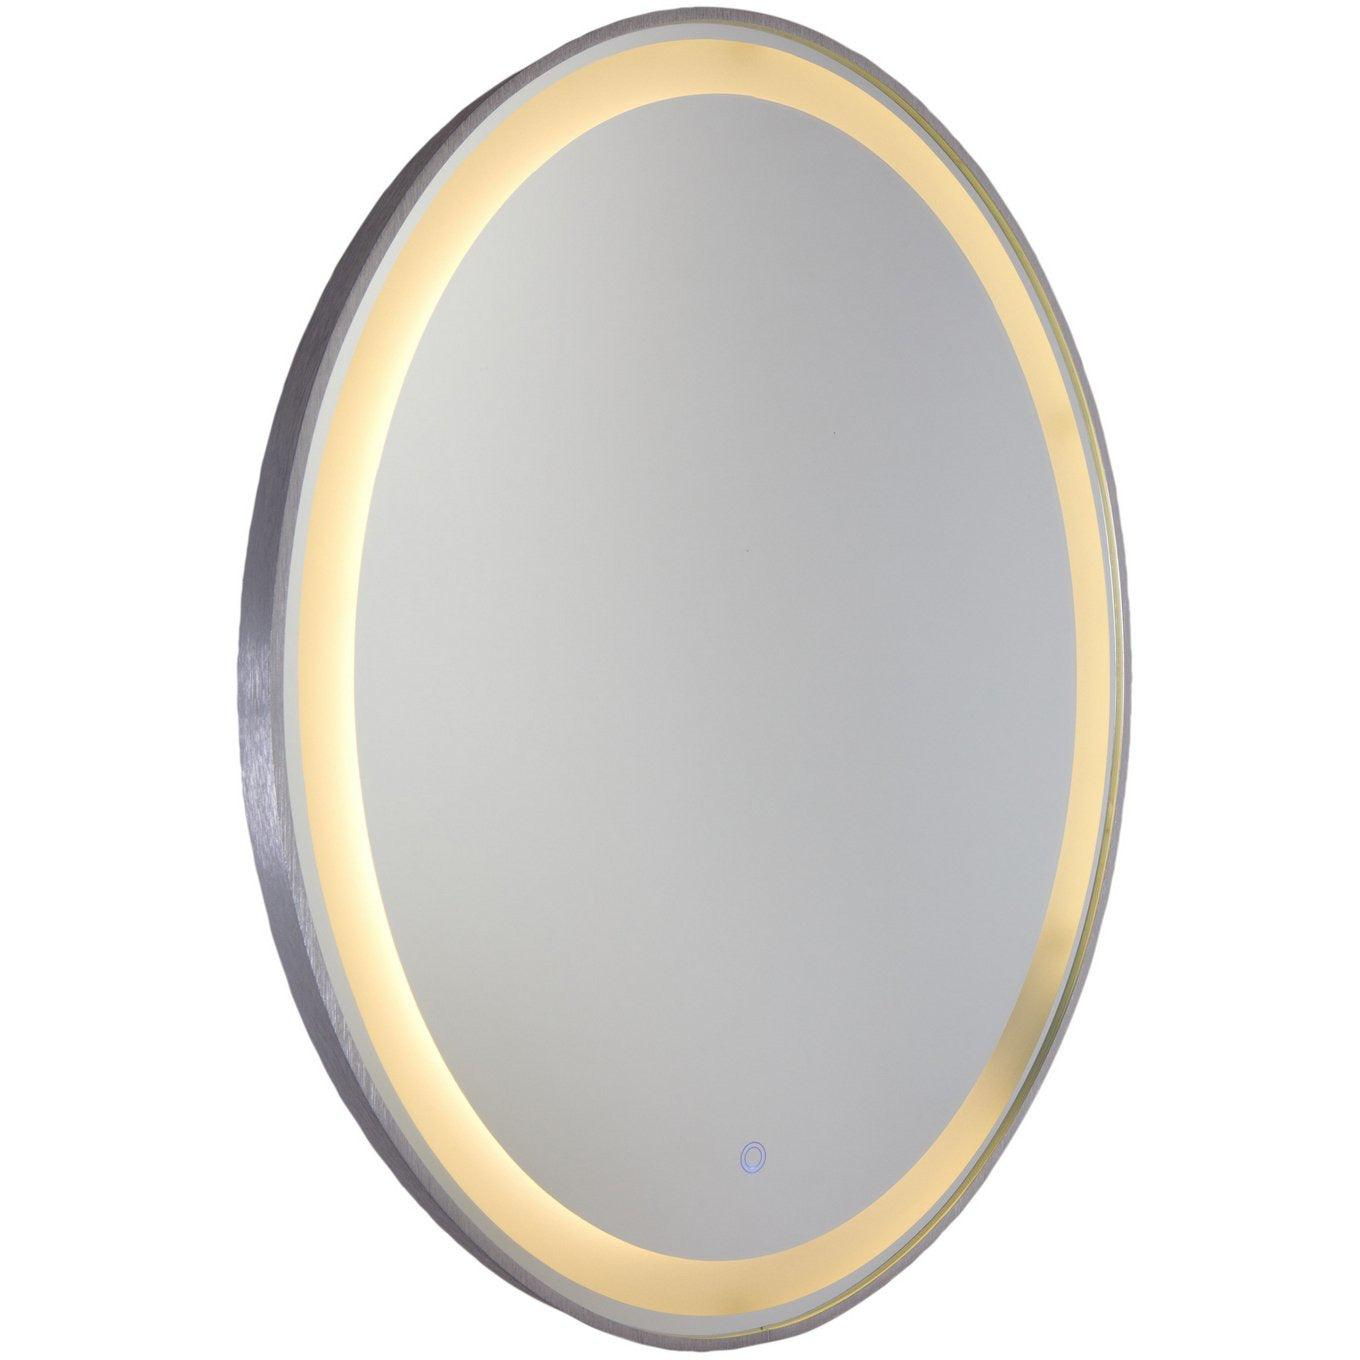 Artcraft Lighting - AM300 - LED Mirror - Reflections - Brushed Aluminum